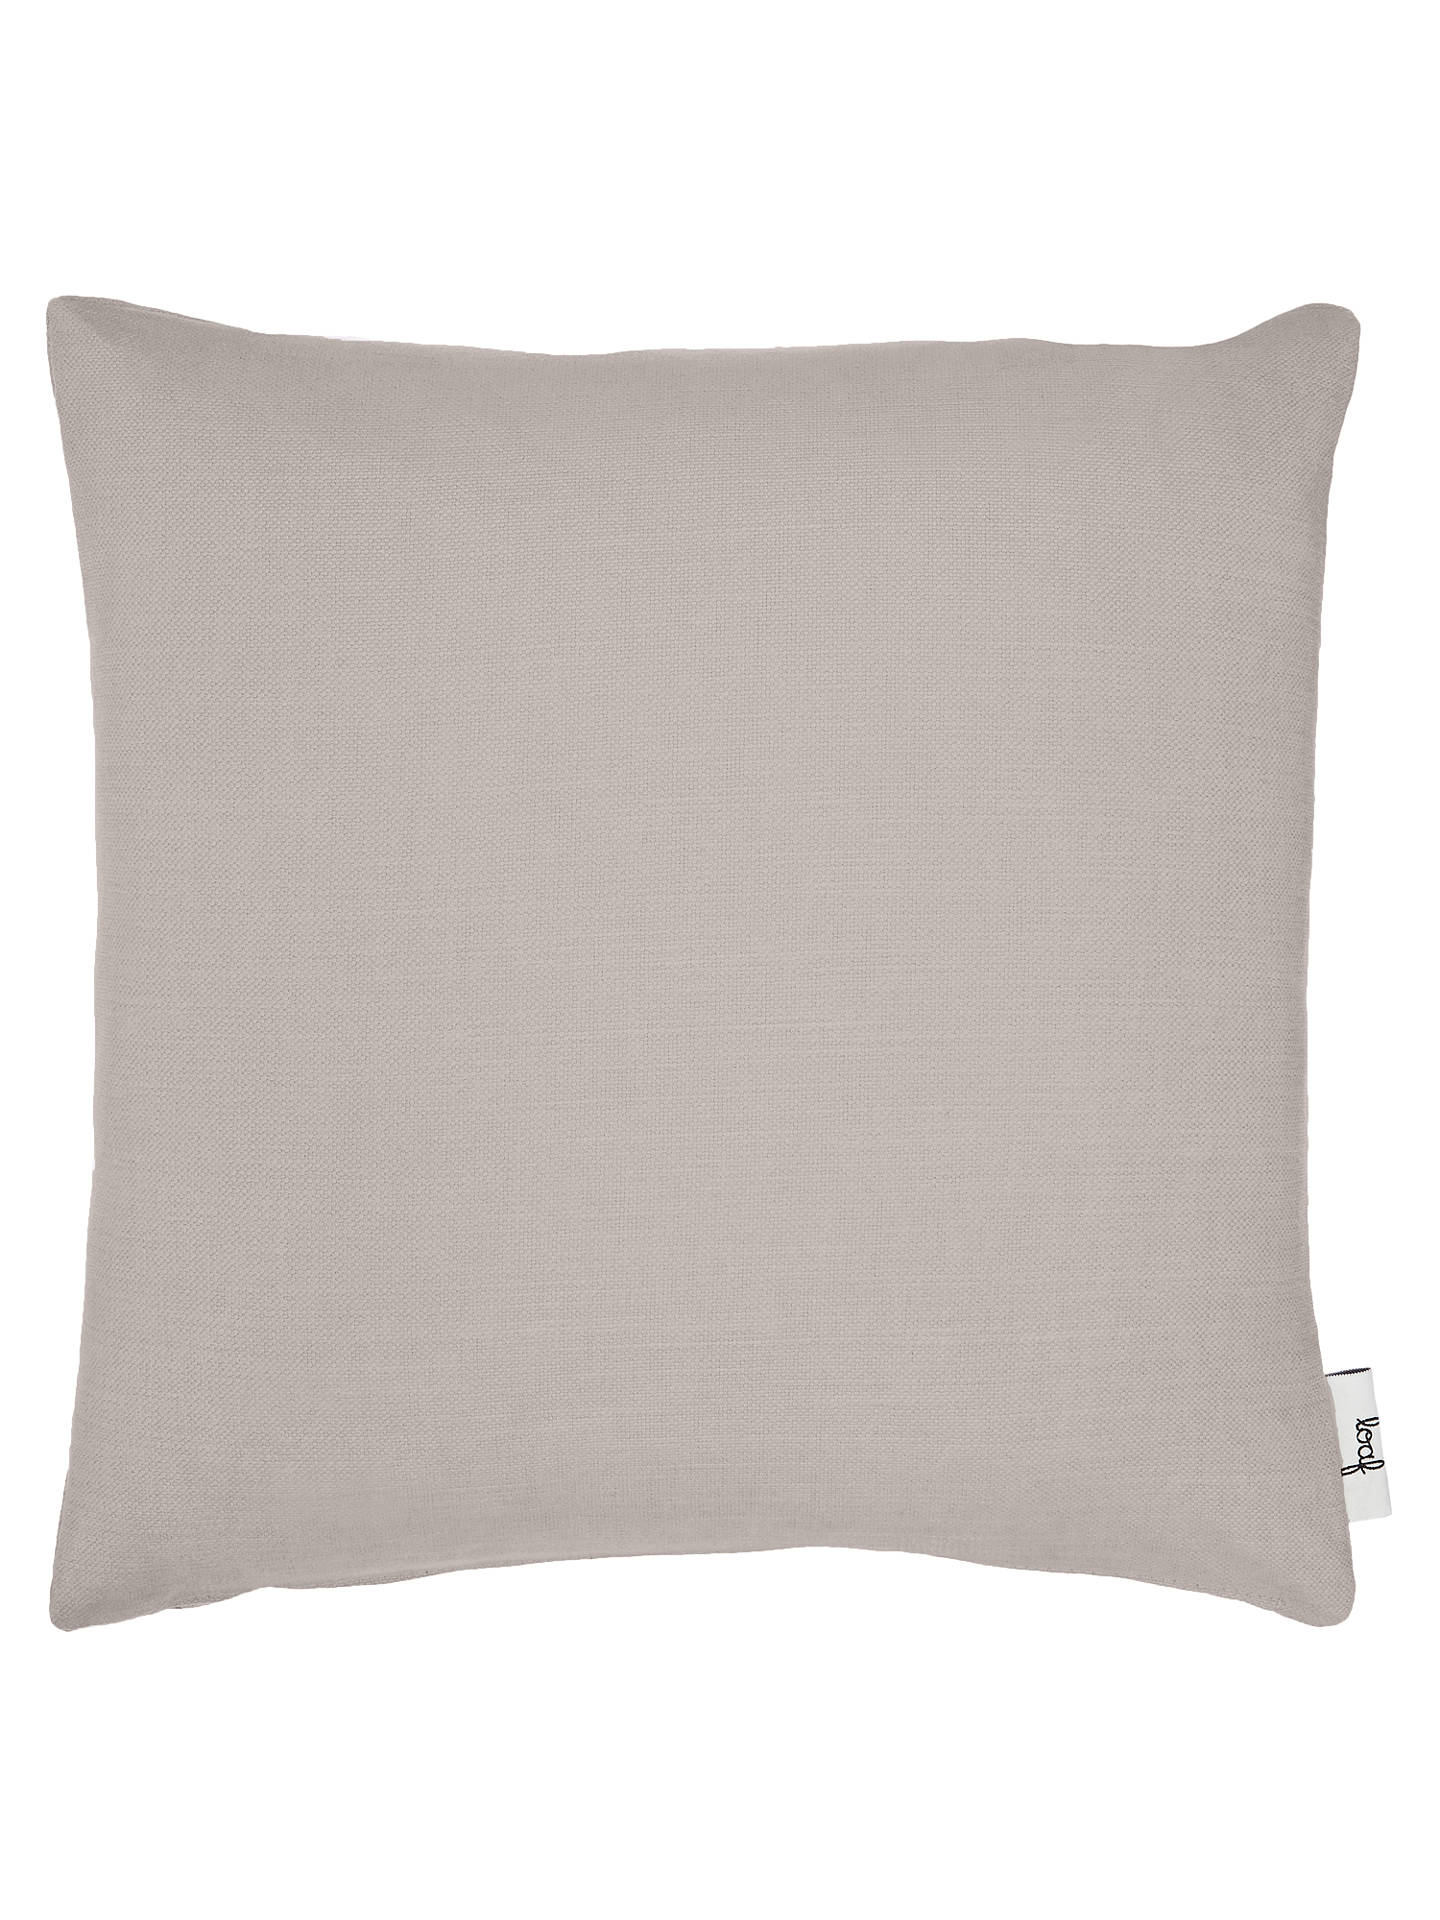 Buy Square Scatter Cushion by Loaf at John Lewis, Brushed Cotton Wolf Online at johnlewis.com